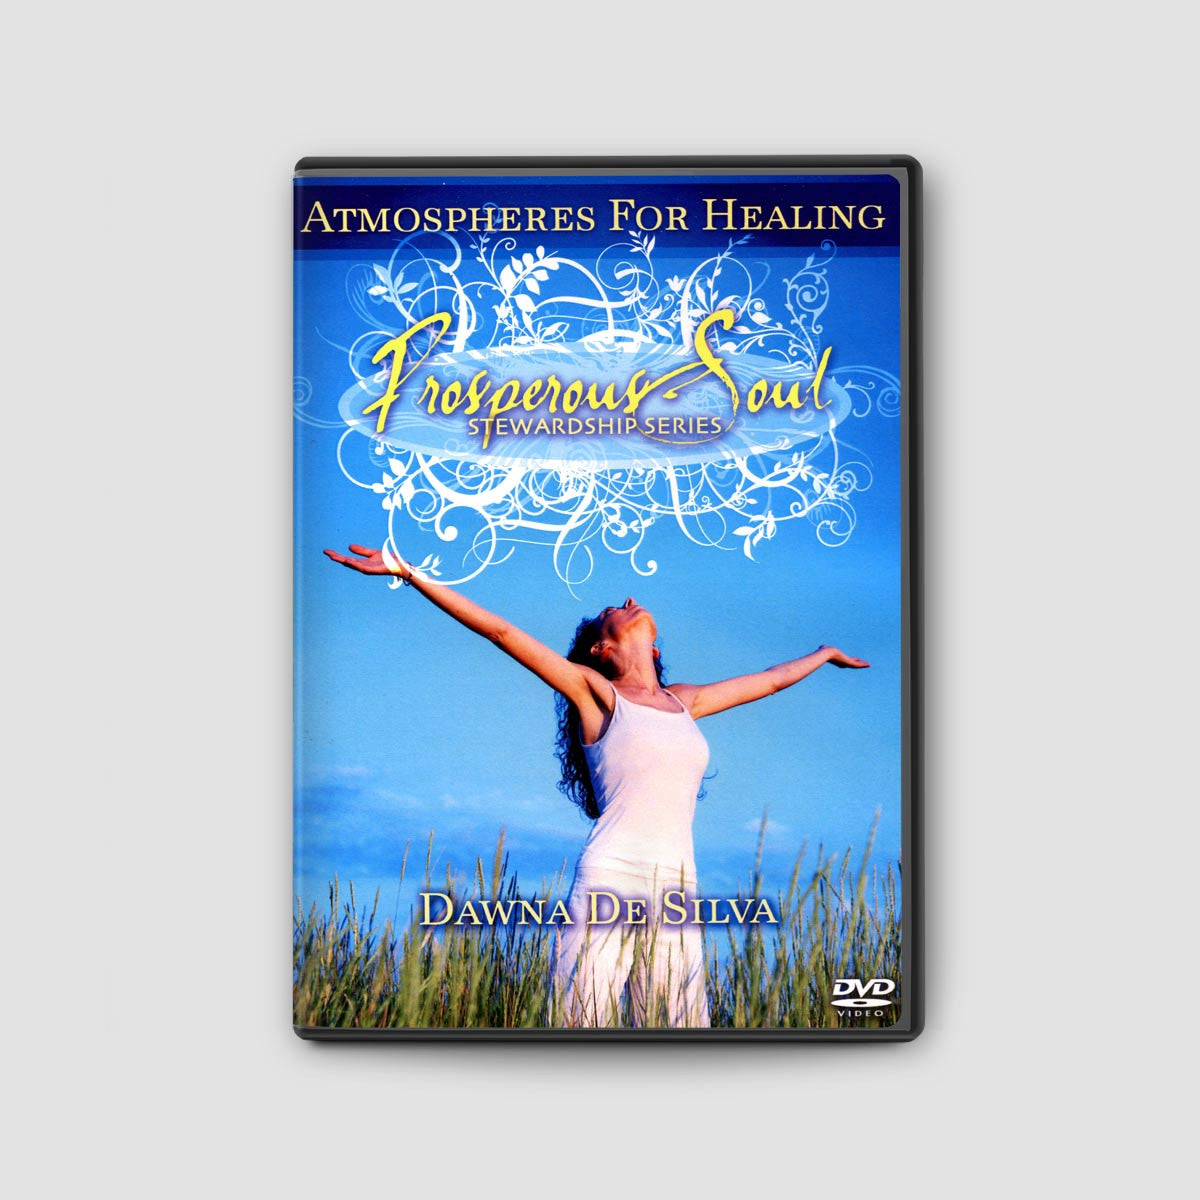 Atmospheres for Healing